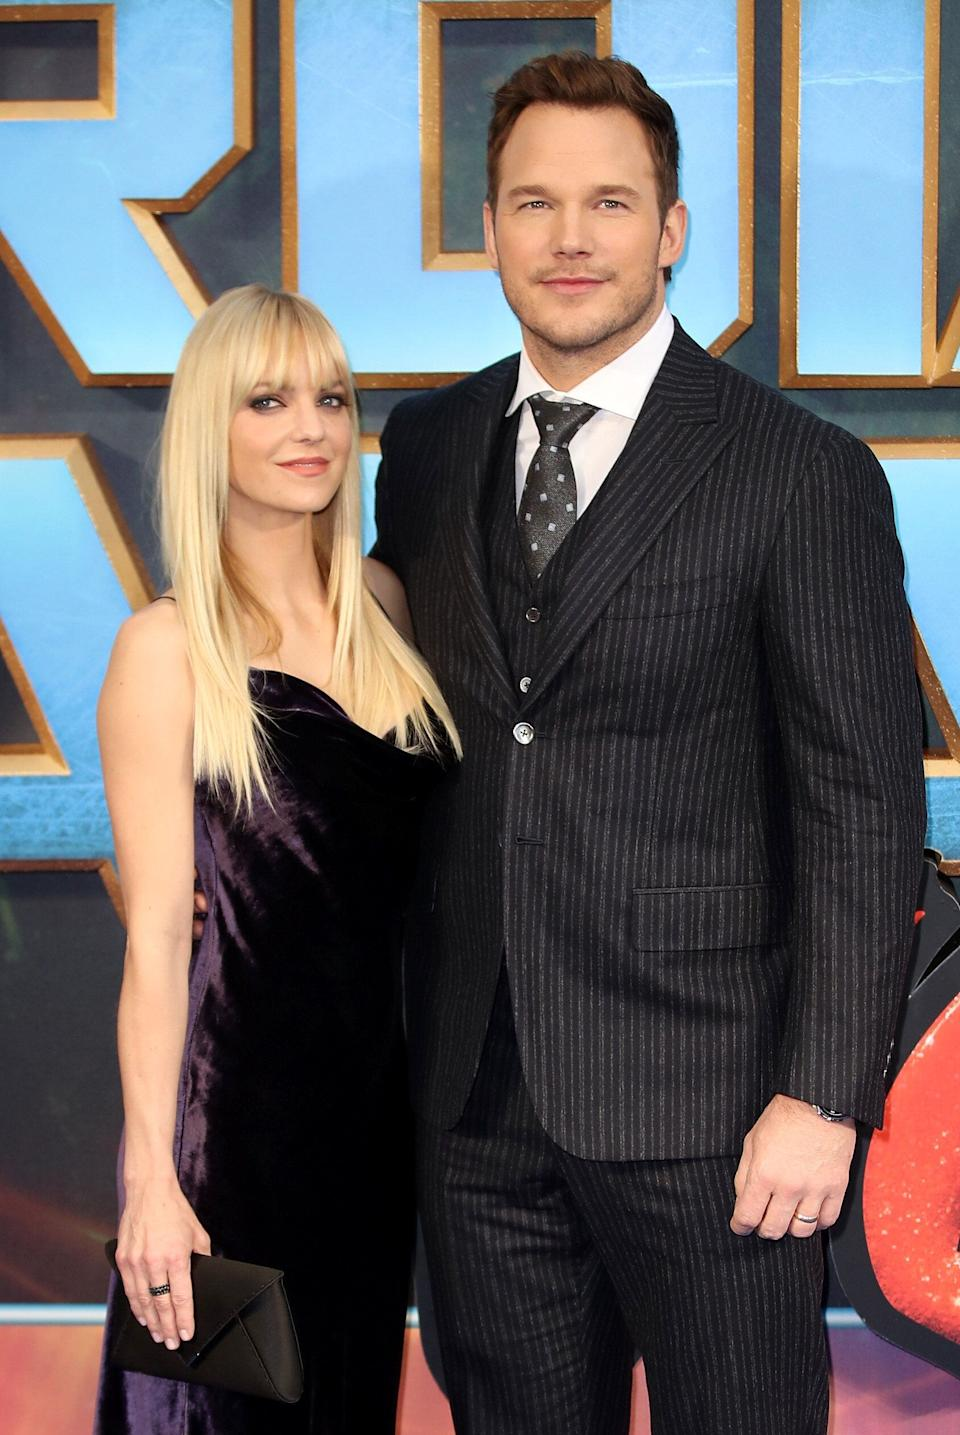 """Anna Faris with her ex-husband Chris Pratt at a screening of """"Guardians of the Galaxy Vol. 2"""" in 2017. (Photo: Mike Marsland via Getty Images)"""